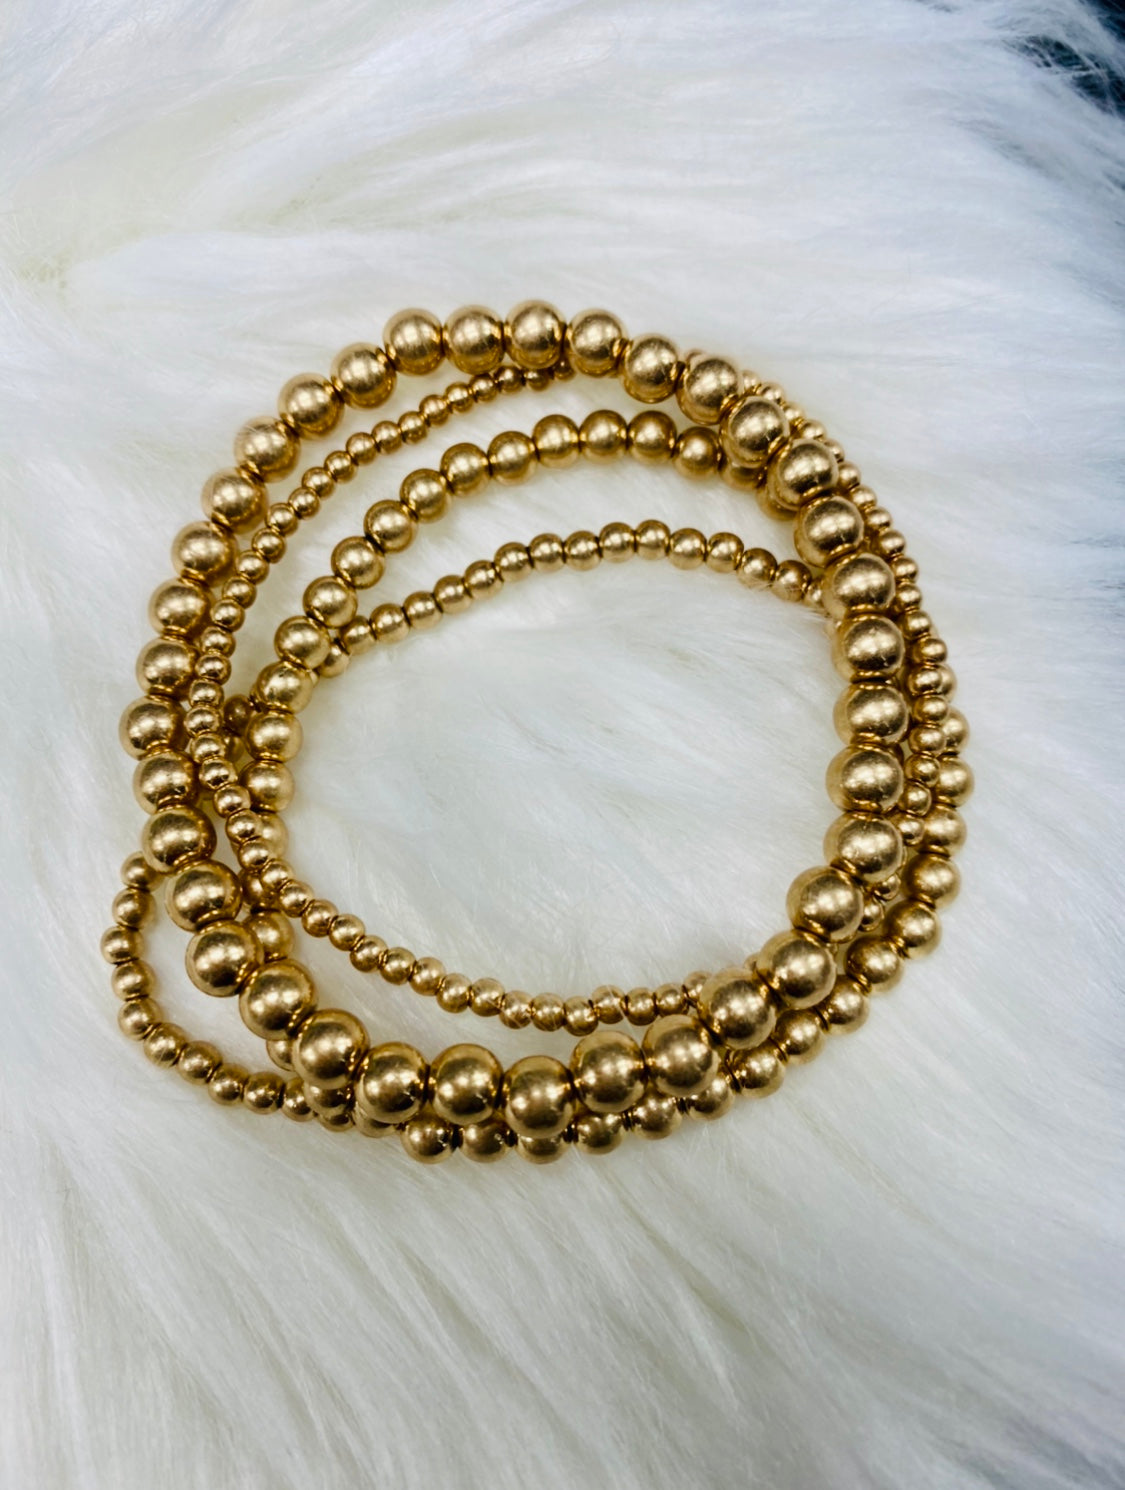 Round Beads Golden Bracelet Set (4 Layers)